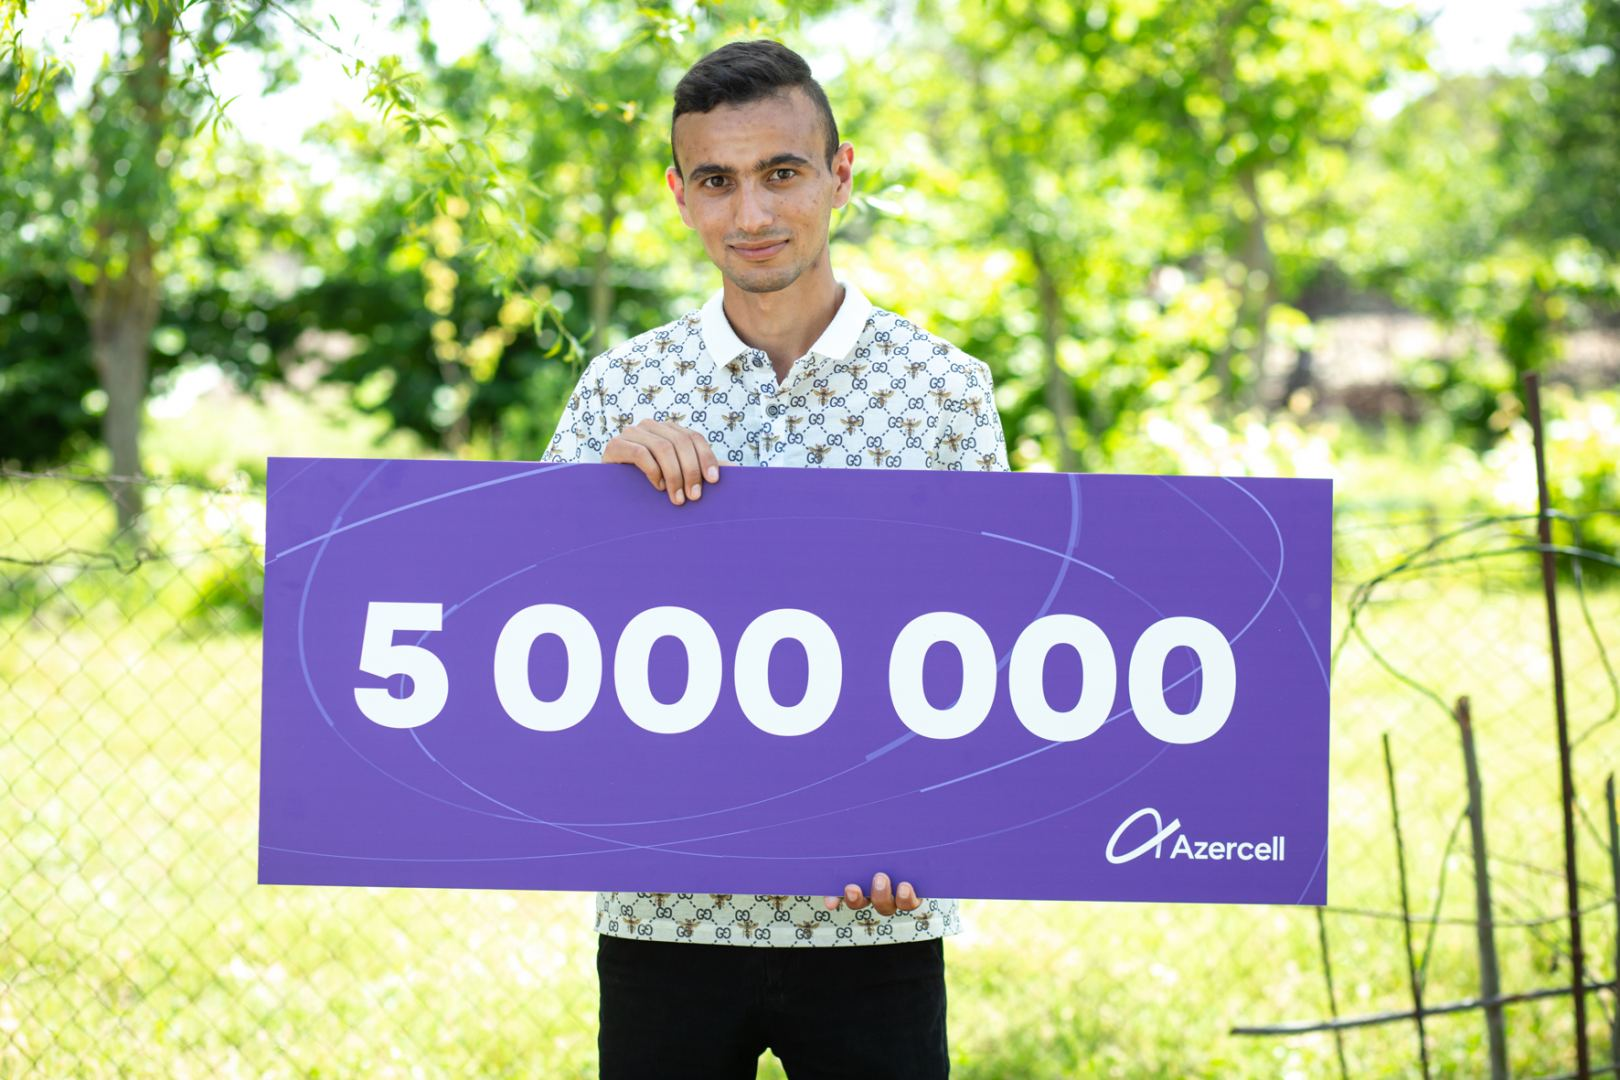 5 million beating hearts of Azercell! (PHOTO/VIDEO)